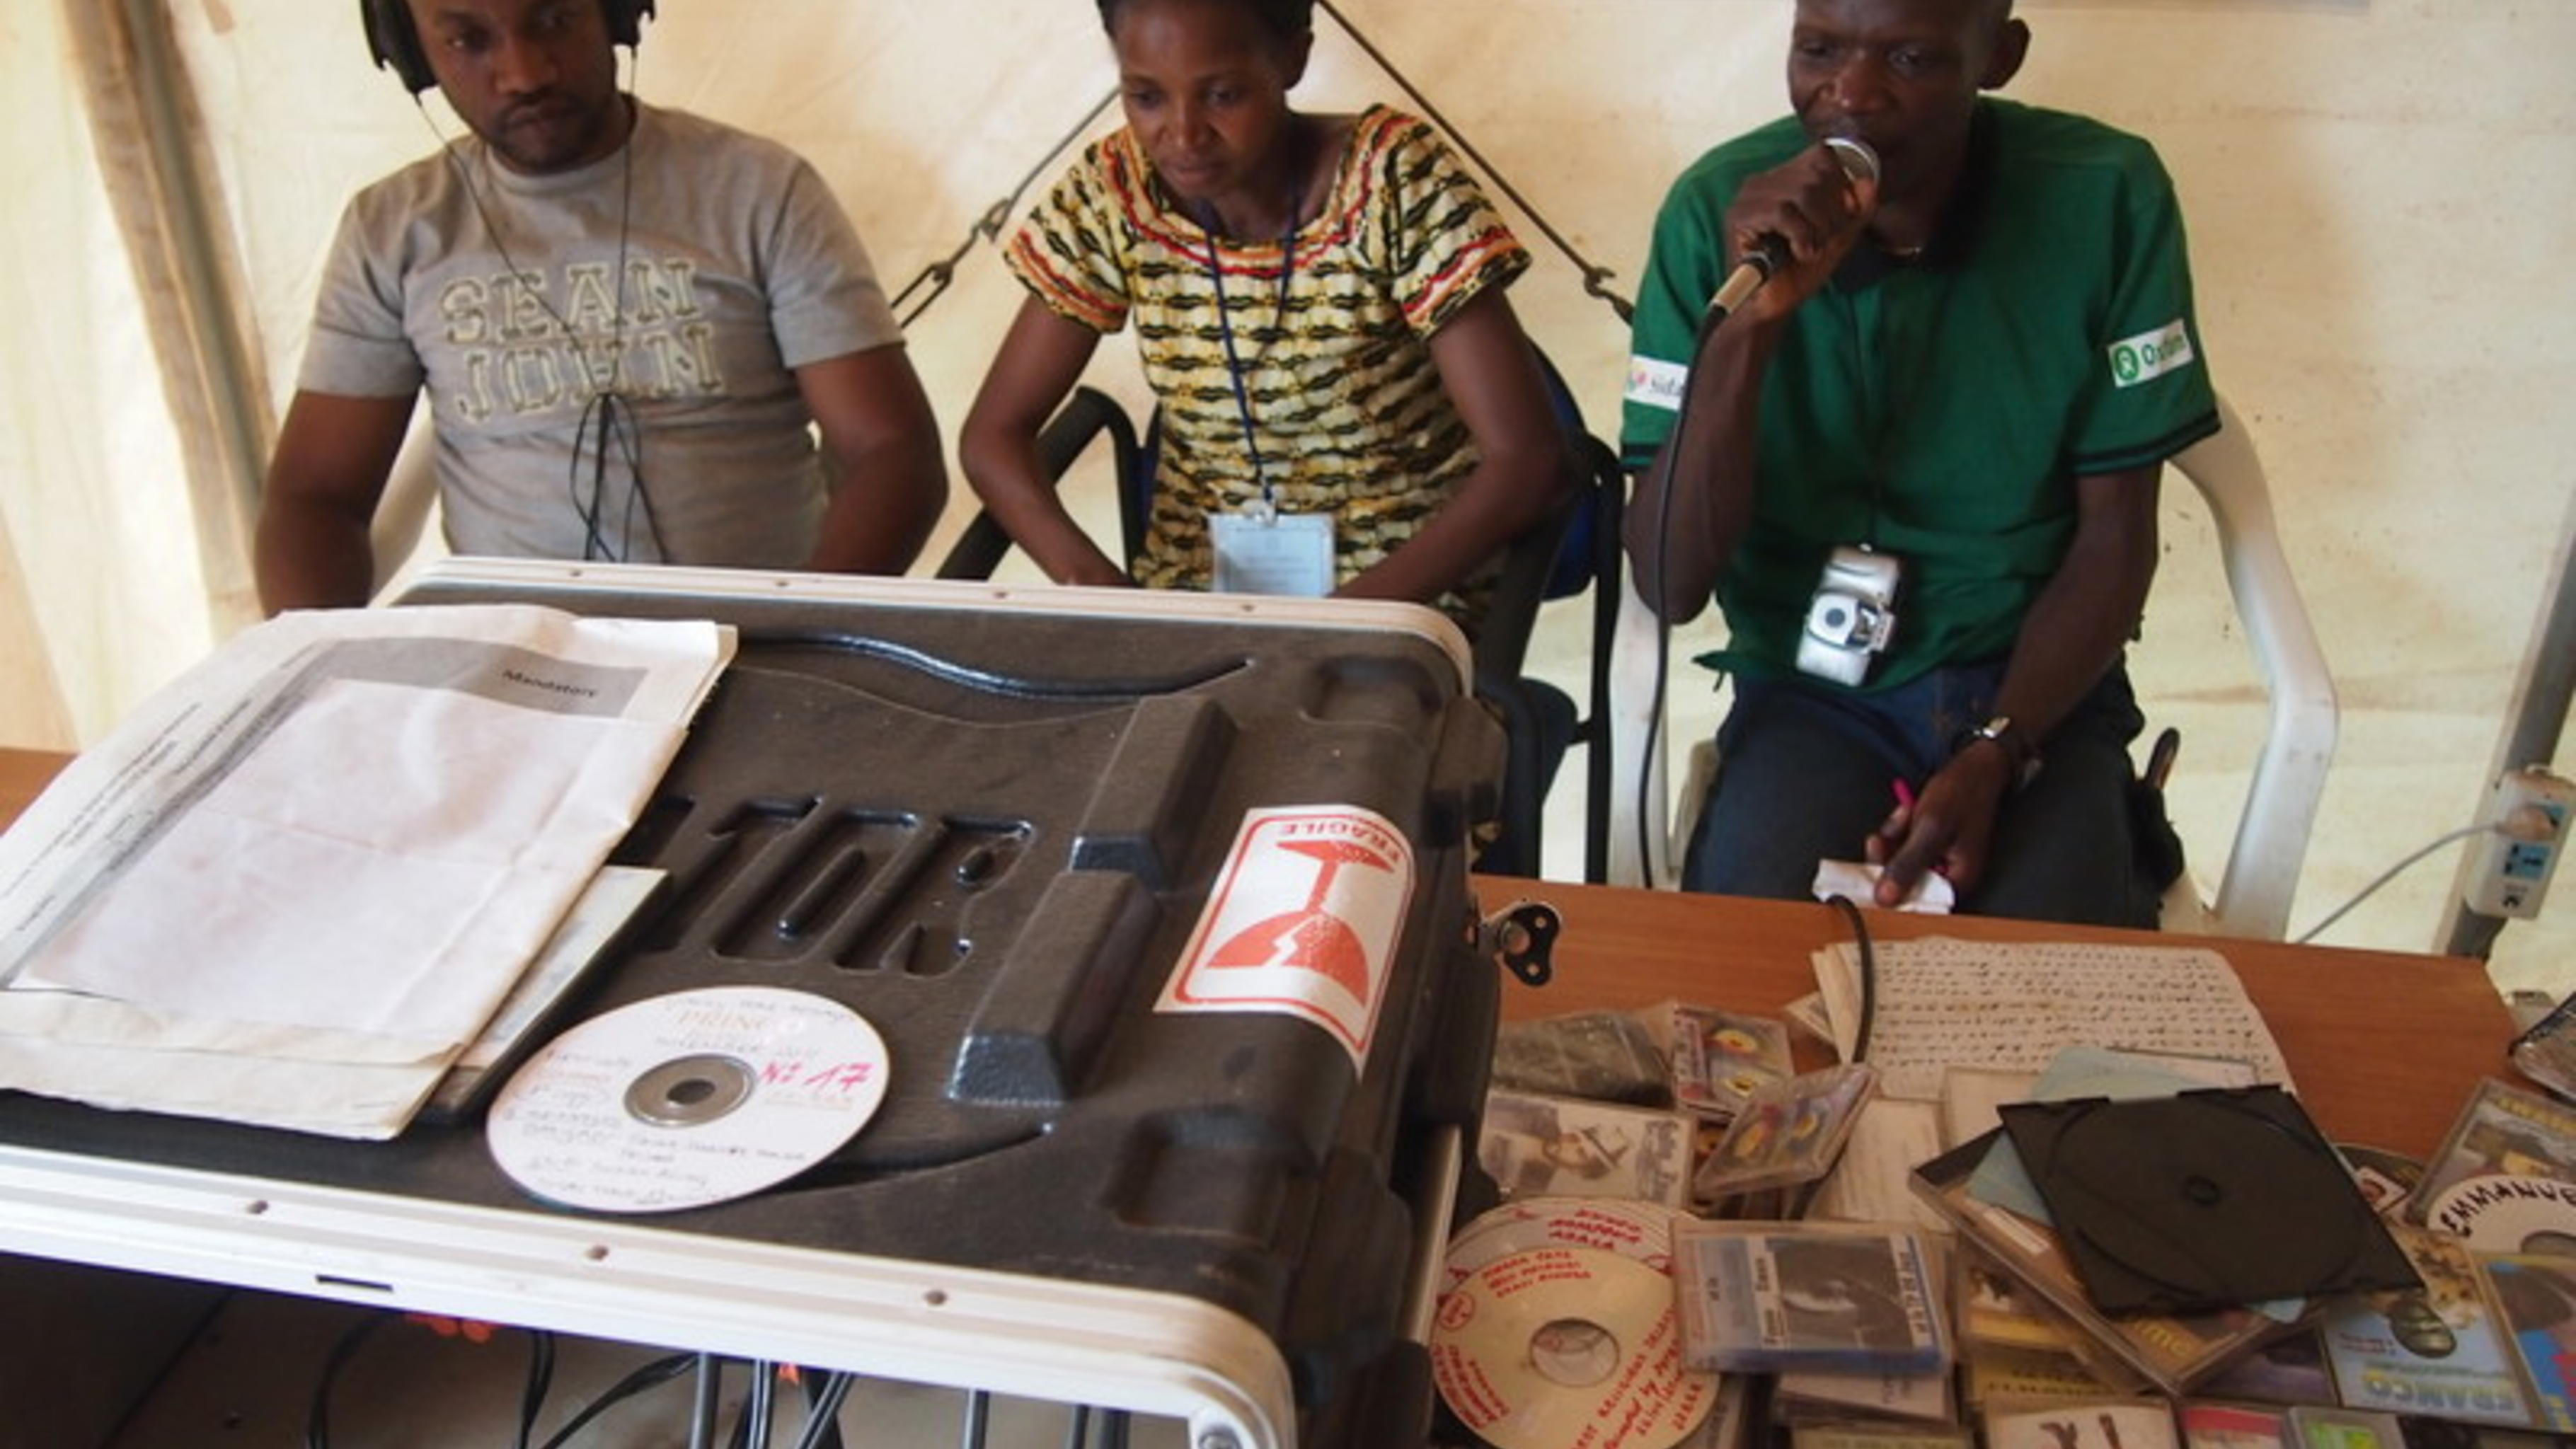 Radiostation in der DR Kongo